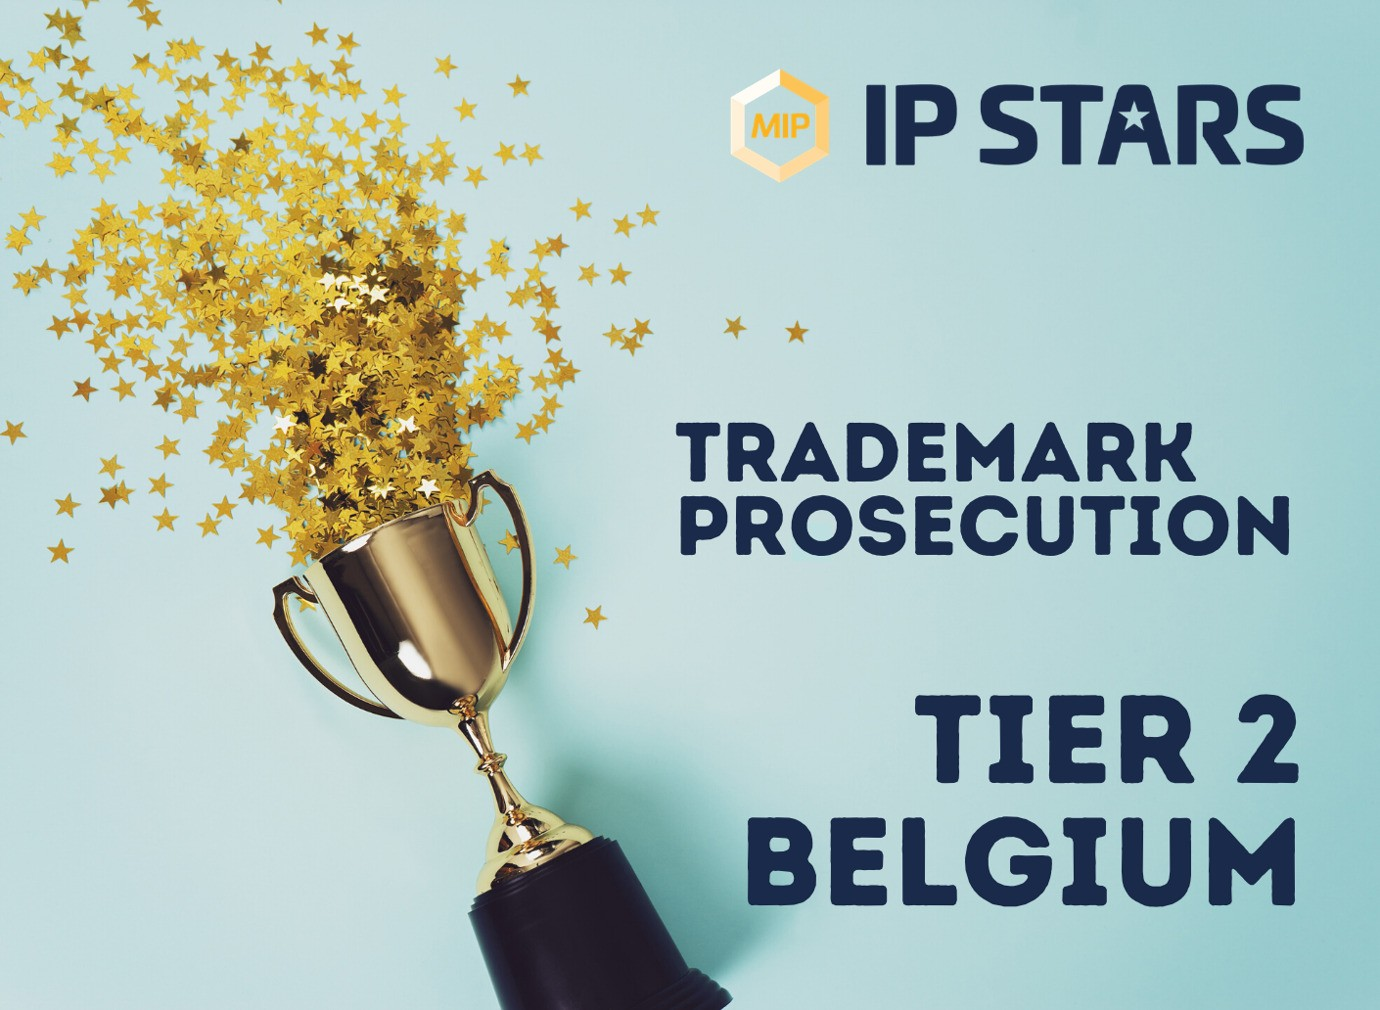 MIP reveals 2020 rankings for Trademark Prosecution firms